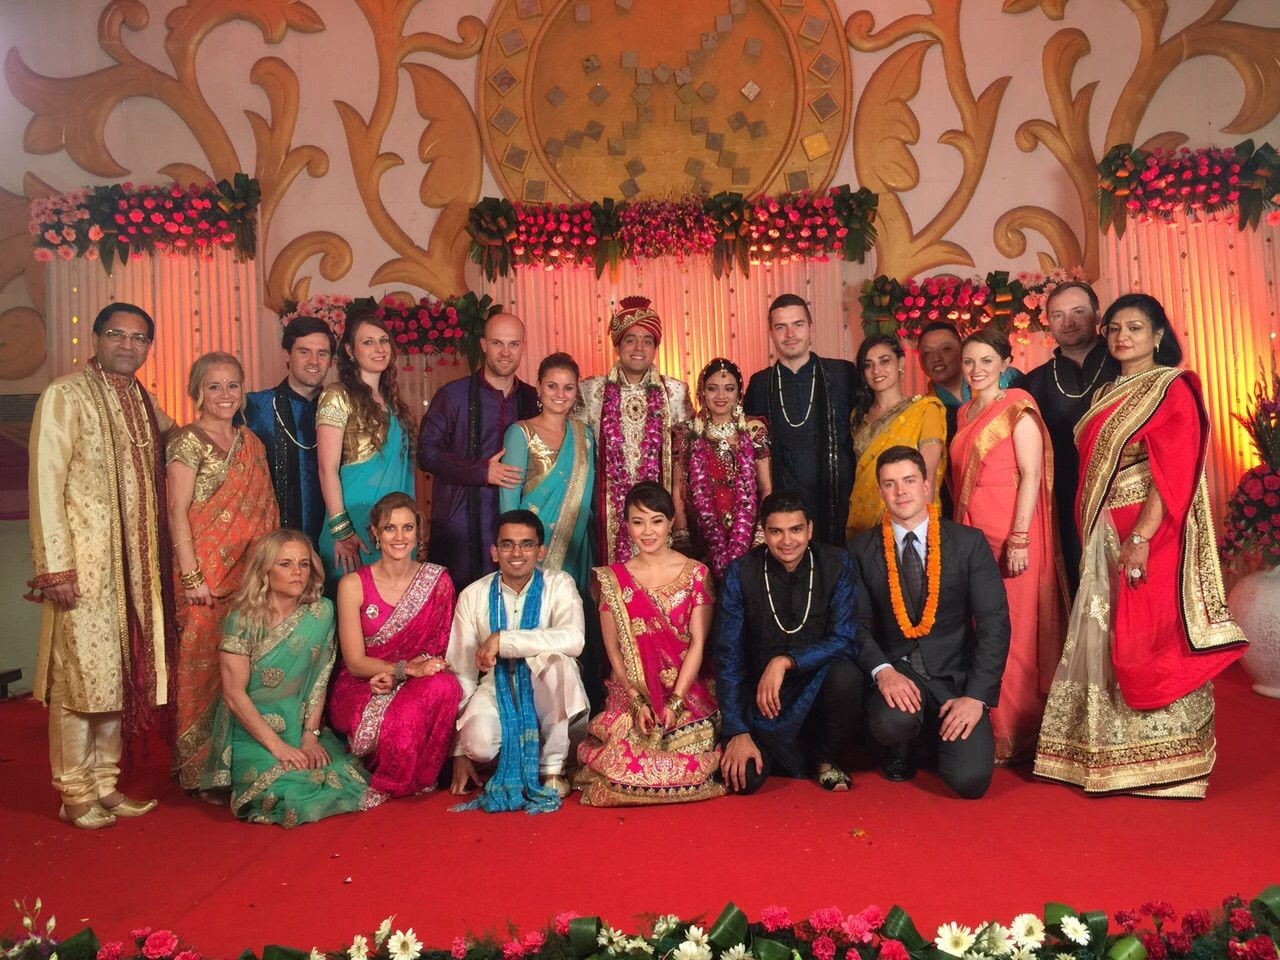 Gunjan's Wedding Group Photo in Delhi photo 2015-05-15 GunjanWedding_zpsm2e4ldfk.jpg